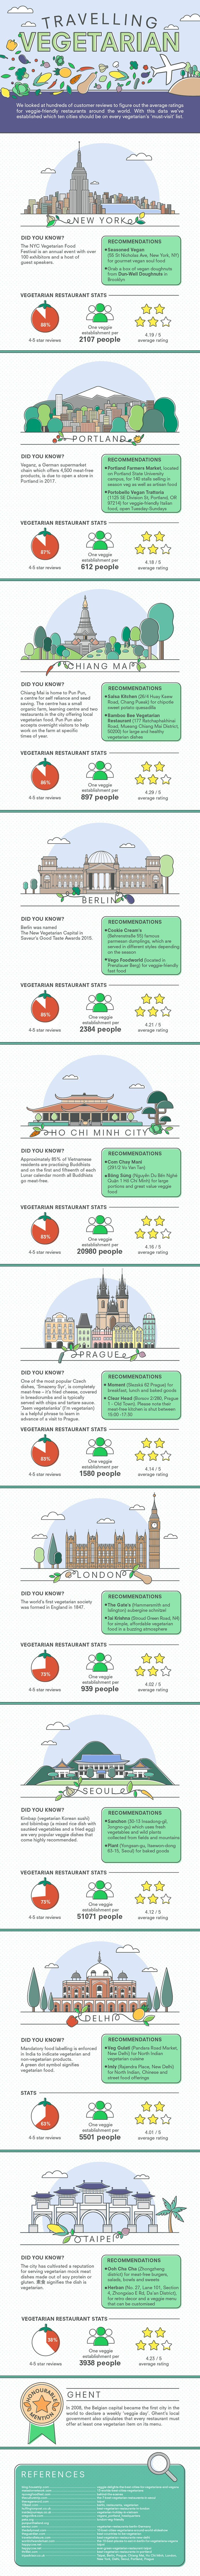 original_vegetarian-friendly-cities-infographic-1.jpg